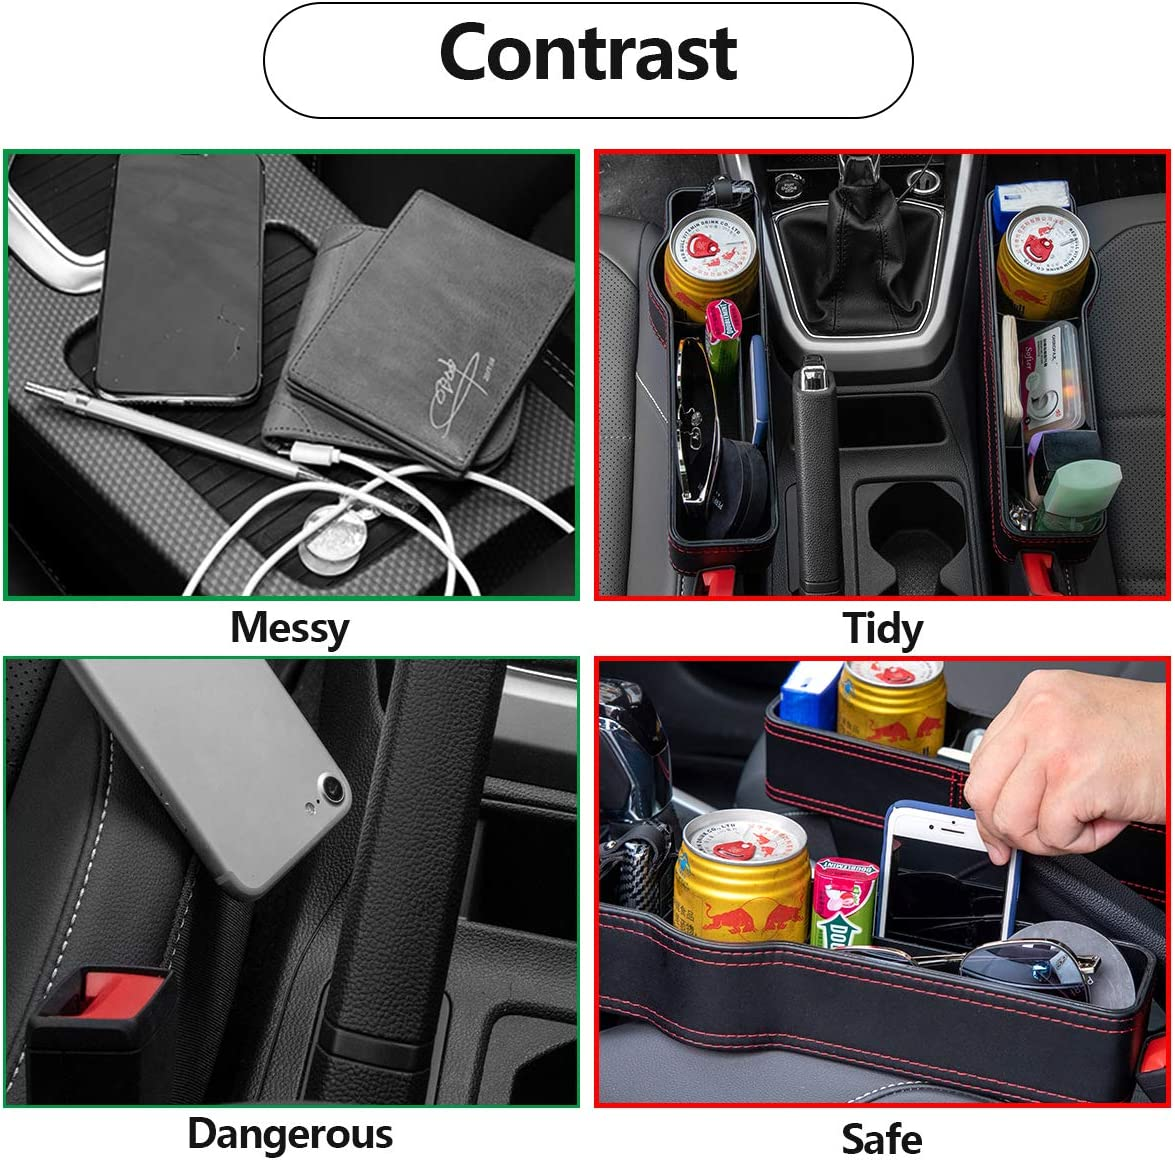 GoHoKi Car Seat Gap Filler with USB Slot 2 Pack Universal Storage Box for All Car Seats Premium Leather Car Seat Organizer for Holding Cellphones Coins Cards Keys